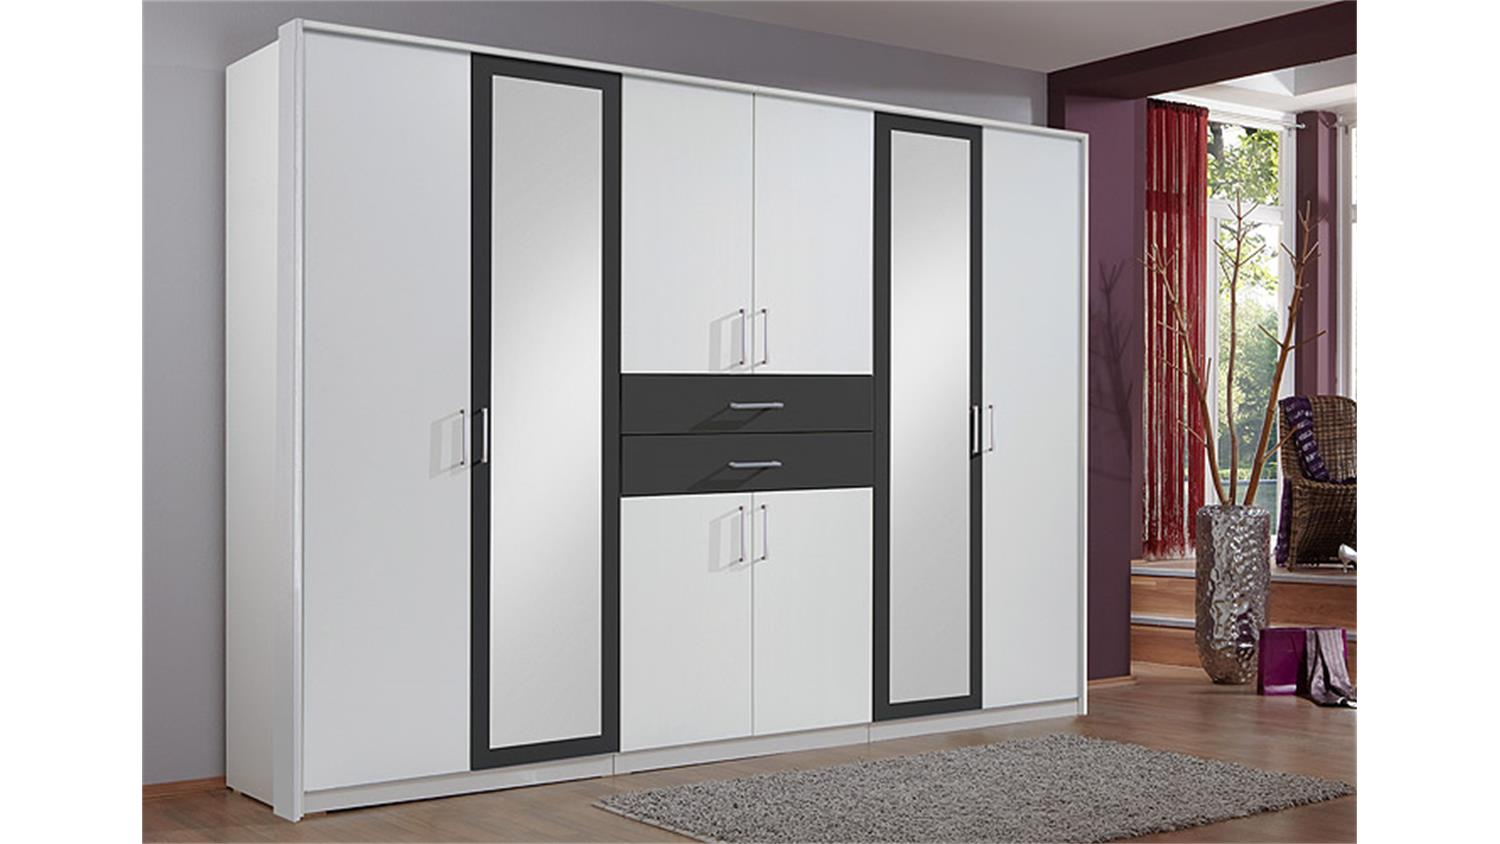 kleiderschrank 270 cm breit kleiderschrank gamma wei. Black Bedroom Furniture Sets. Home Design Ideas